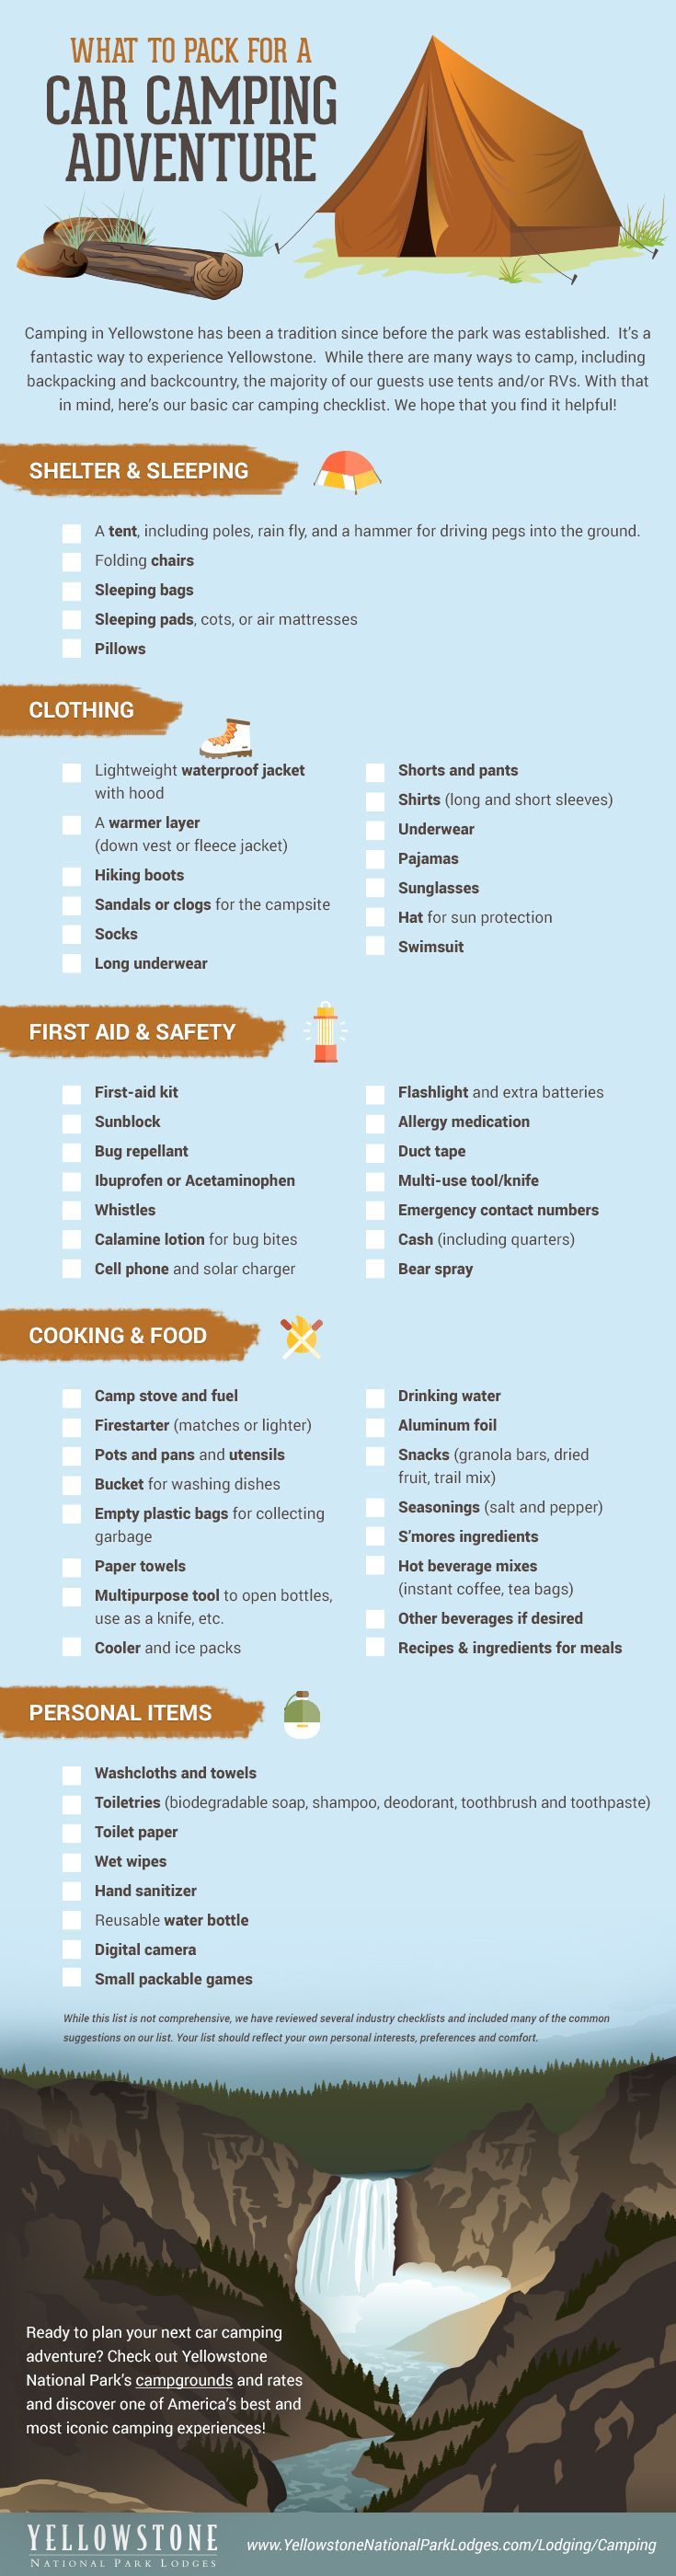 Camping in Yellowstone has been a tradition since before the park was established, and it's a fantastic way to experience Yellowstone! With that in mind, here's our basic car camping checklist!